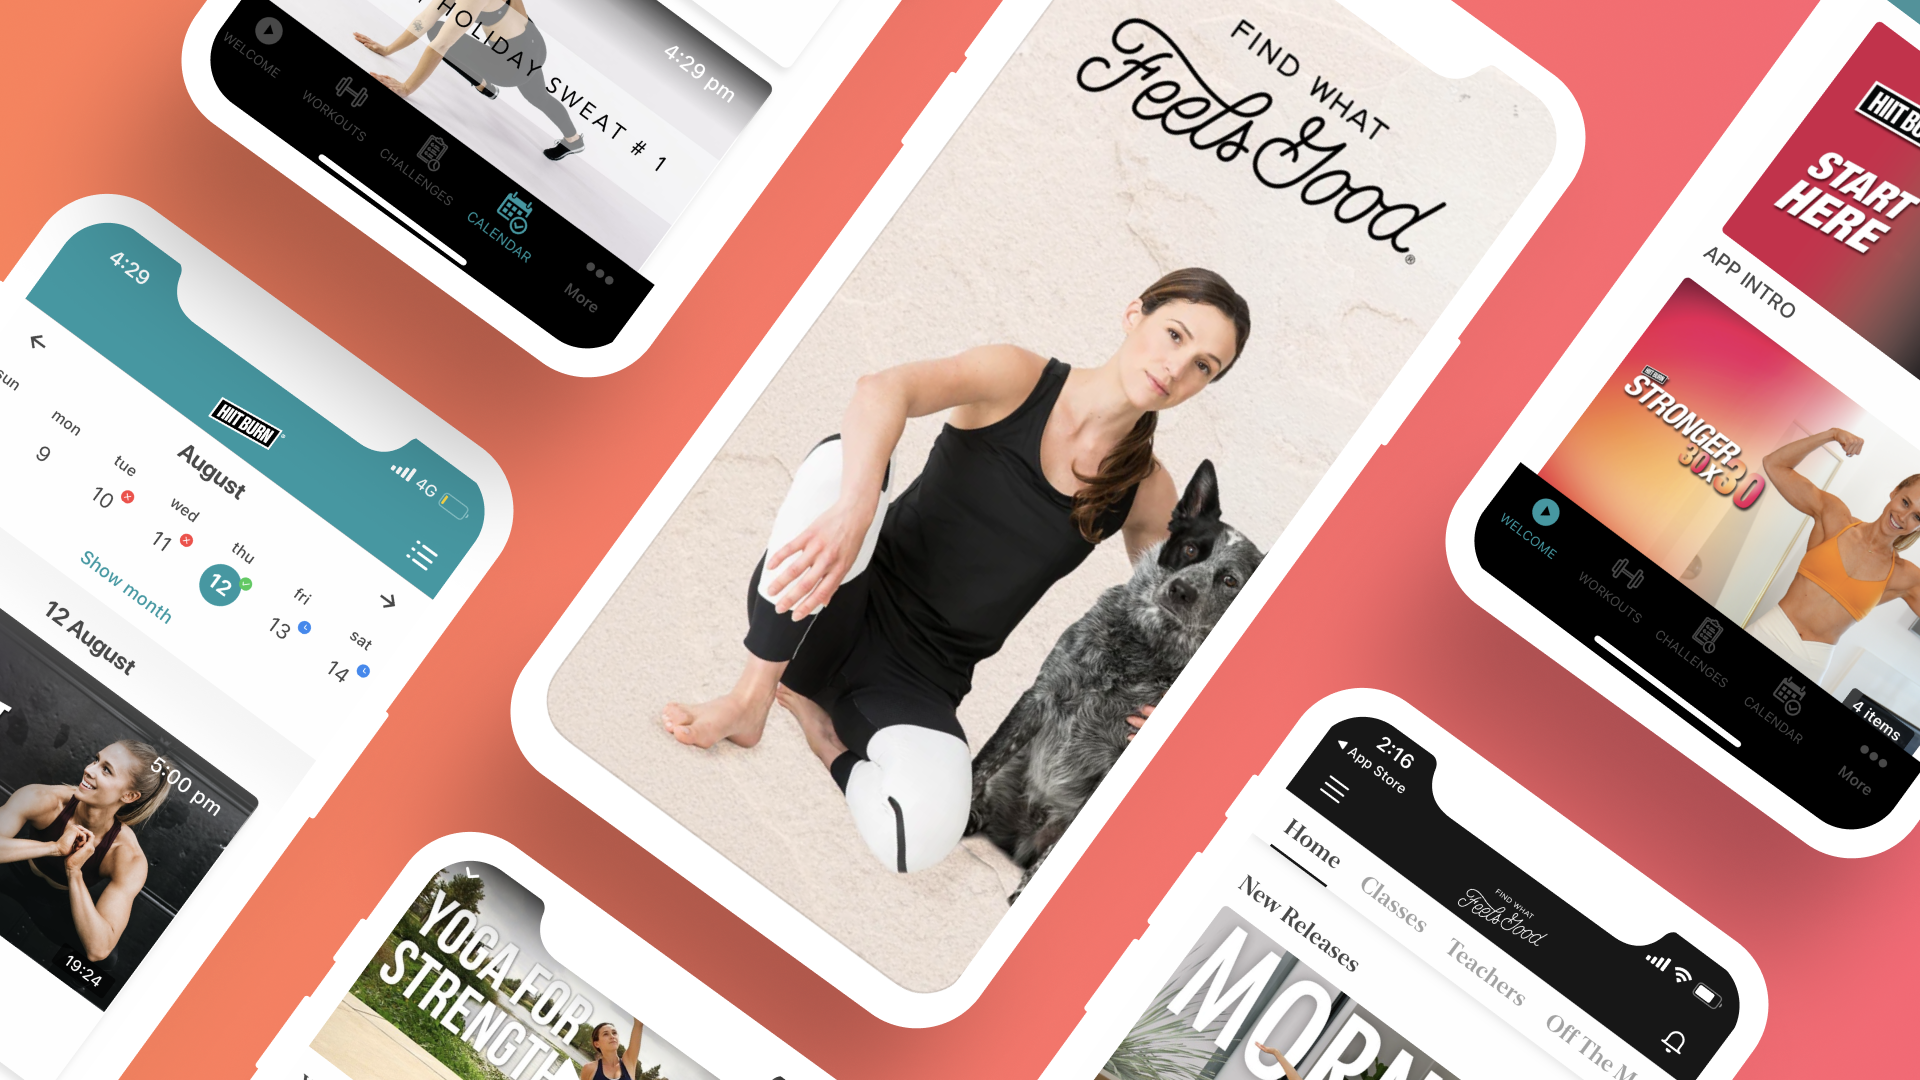 Video streaming mobile app builder for yoga expert and influencer